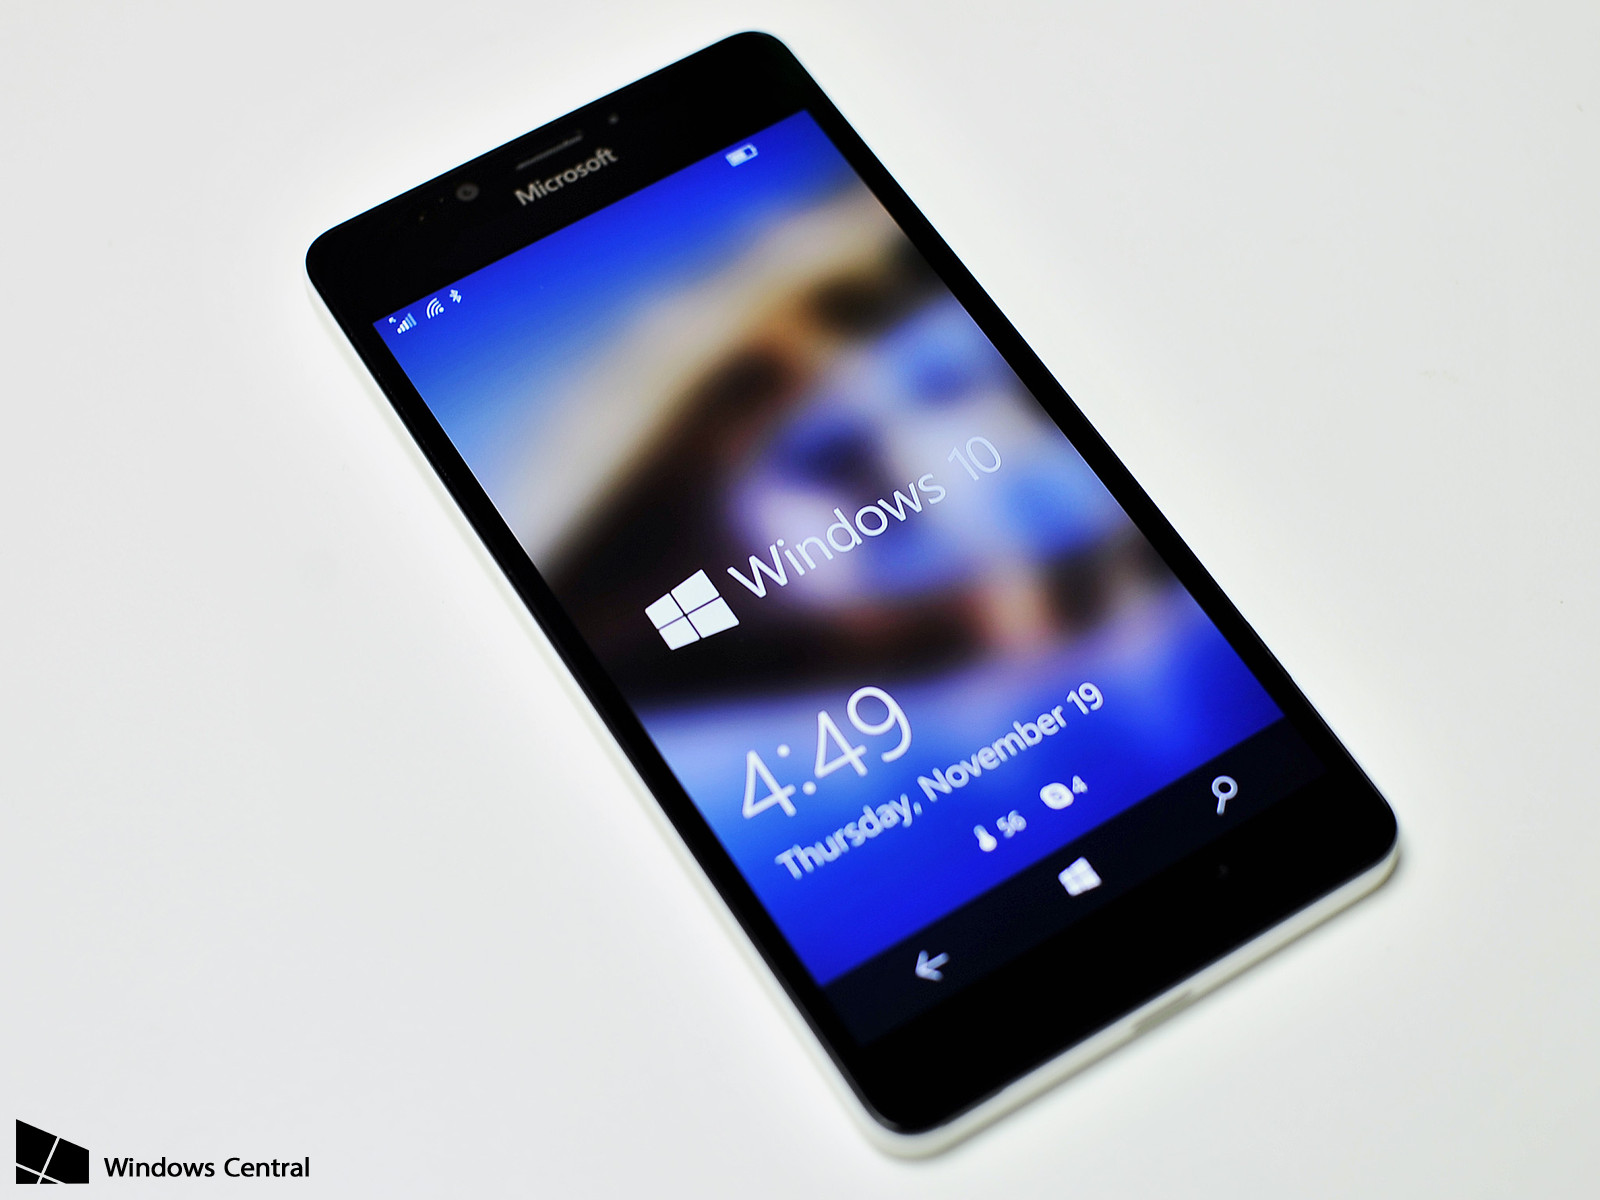 Windows Phone: Here Is the News in the Next update